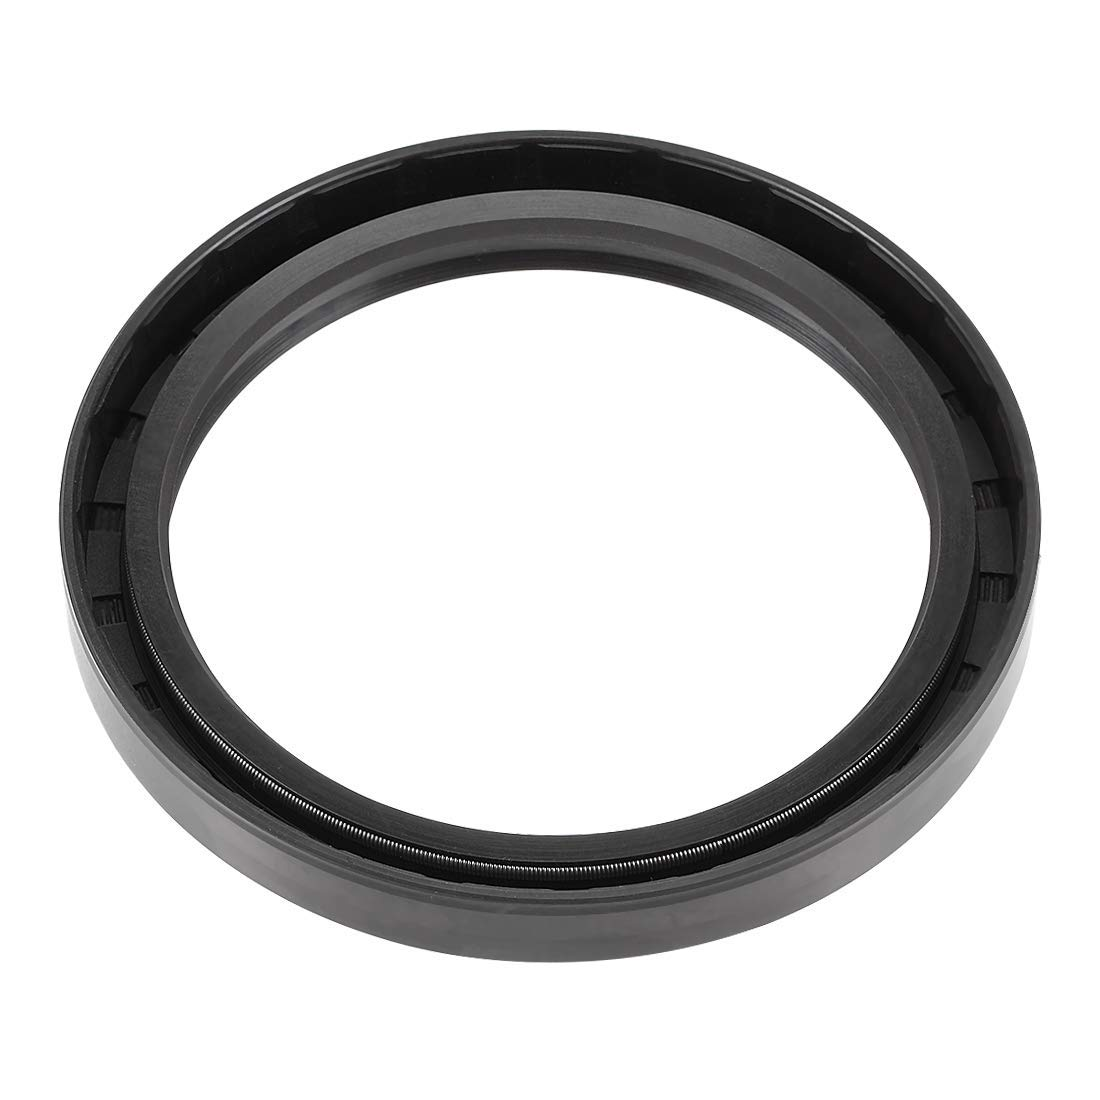 Double Lip Nitrile Rubber Cover TC 80 mm x 100 mm x 12 mm Oil Seal